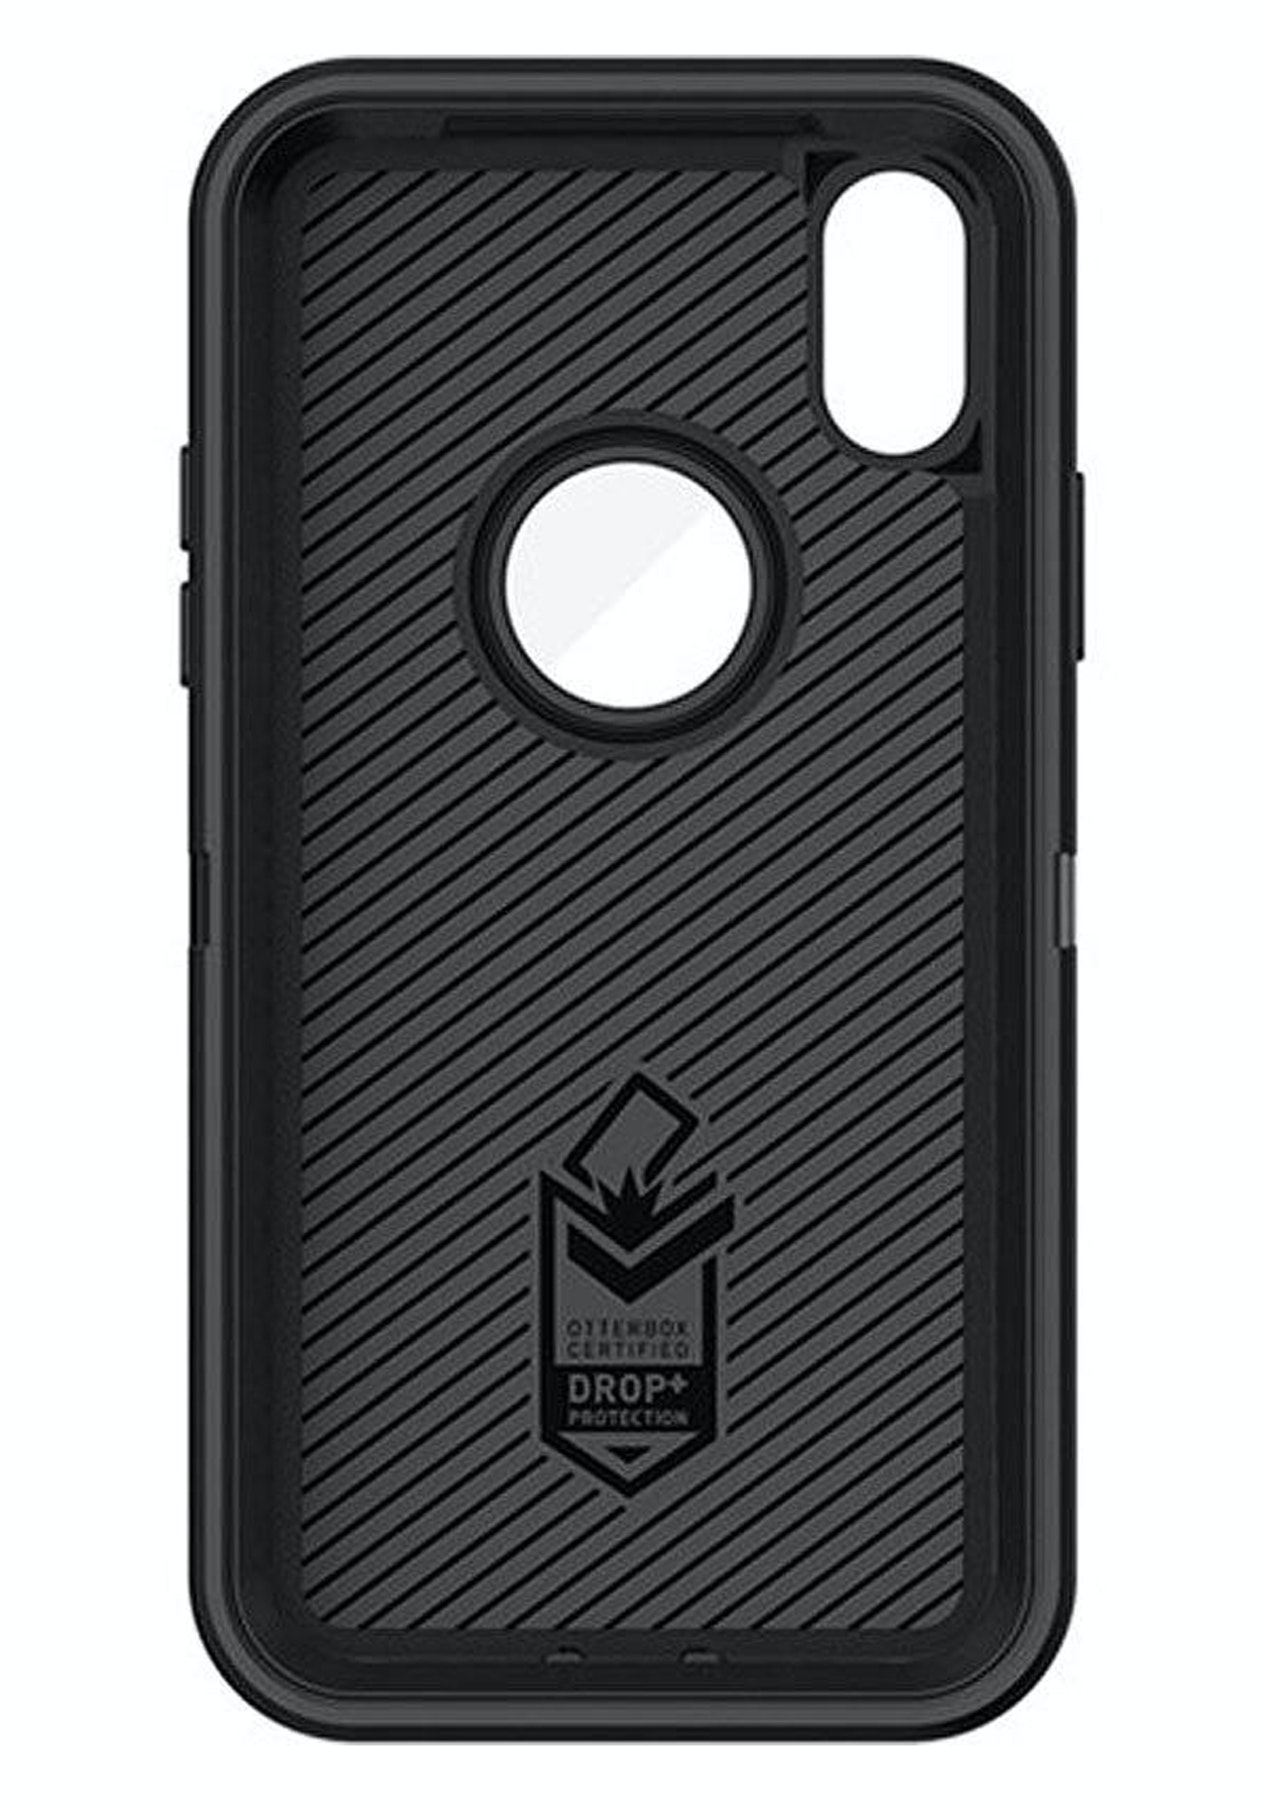 san francisco dbbdd 8f9dc Genuine Apple iPhone X OtterBox Defender Rugged Case w/ Belt Clip /  Kickstand - Black